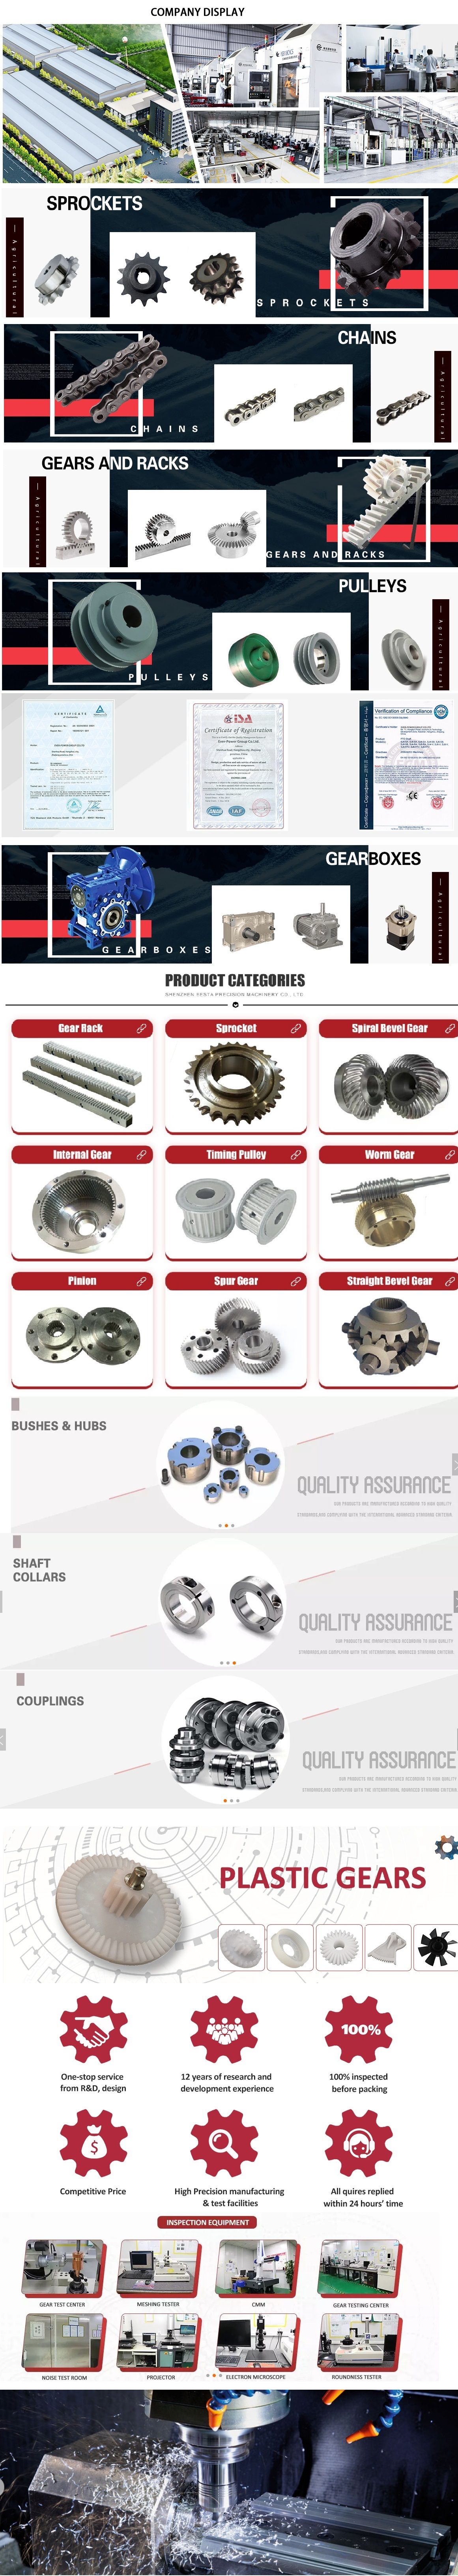 in Astrakhan Russian Federation  sales   price   shop   near me   near me shop   factory   supplier Worm Gear Reducers Stainless Steel Wp Series Reducer Small Reduction Gearbox Worm Gear Industrial Speed Industrial Transmission Best Manufacture Worm Reducers manufacturer   best   Cost   Custom   Cheap   wholesaler